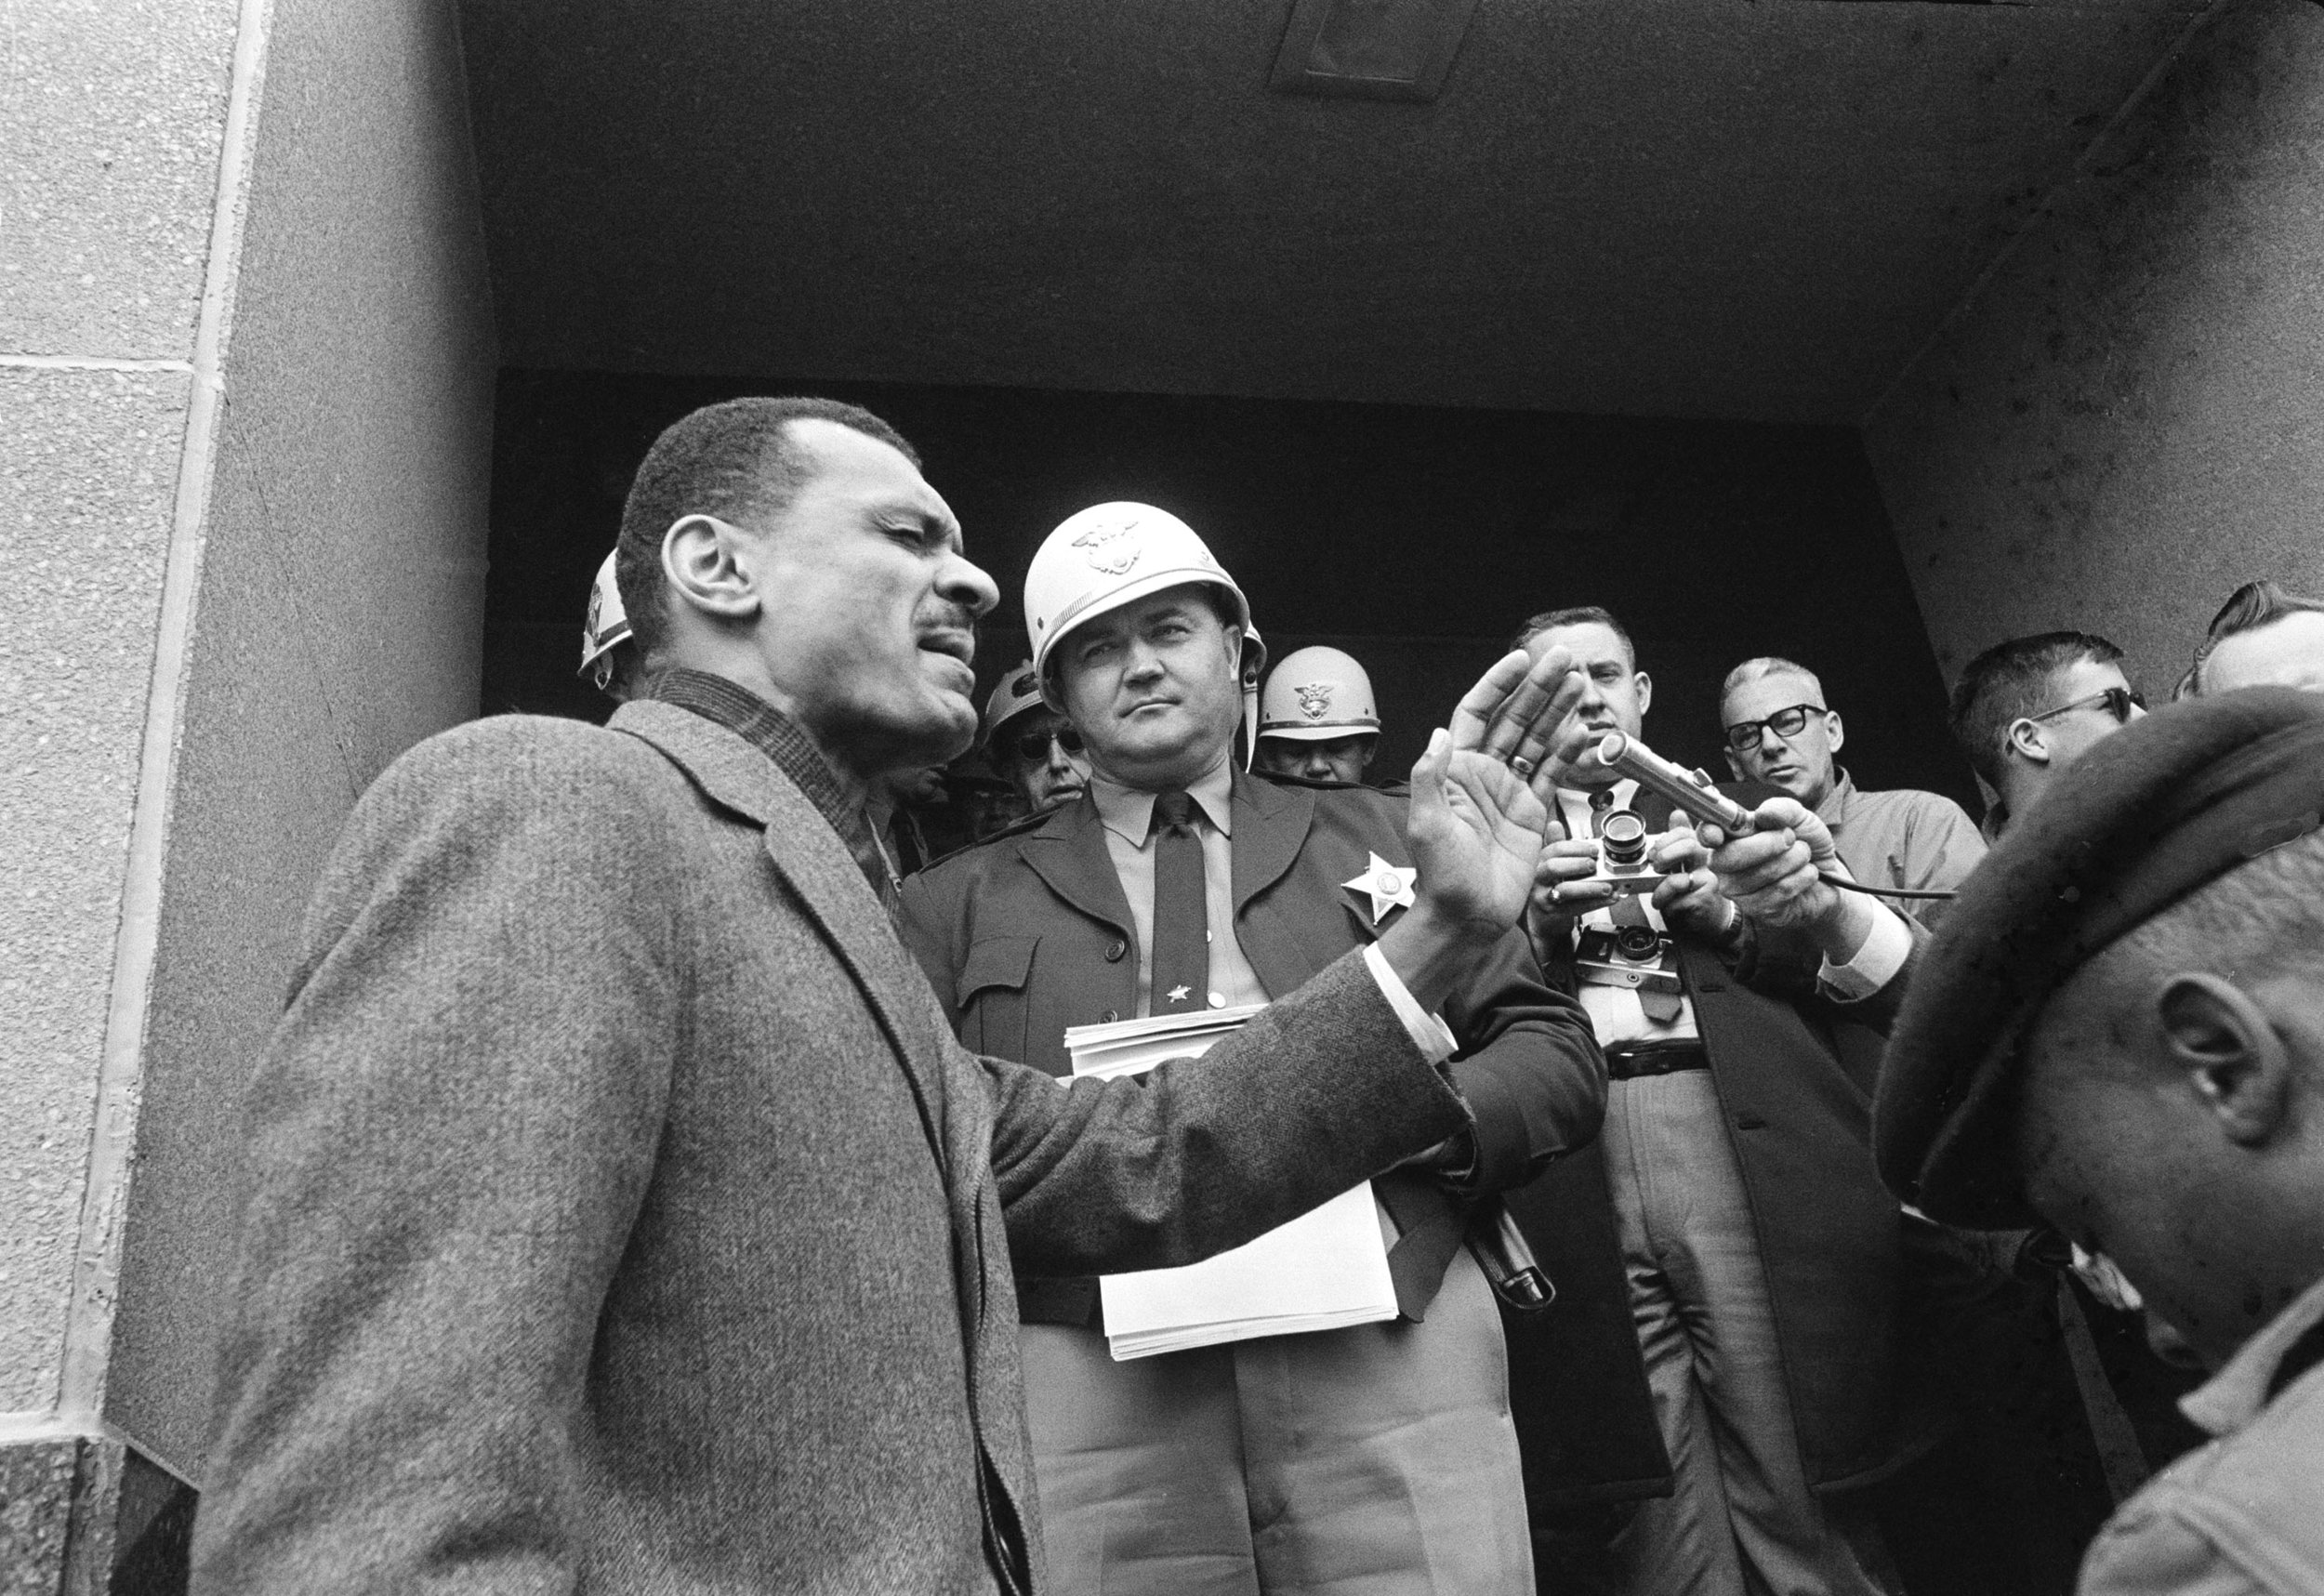 PAGE 89: IN JANUARY 1965, SCLC DIRECTOR REV. C.T. VIVIAN LED A GROUP OF DEMONSTRATORS IN PRAYOR AS THEY ATTEMPTED TO ENTER THE DALLAS COUNTY COURTHOUSE TO REGISTER TO VOTE. DEPUTY SHERIFF JIM CLARK STRUCK REV.VIVIAN DURING A NATIONALLY TELEVISED PROGRAM (PERMISSION OF THE ASSOCIATED PRESS).